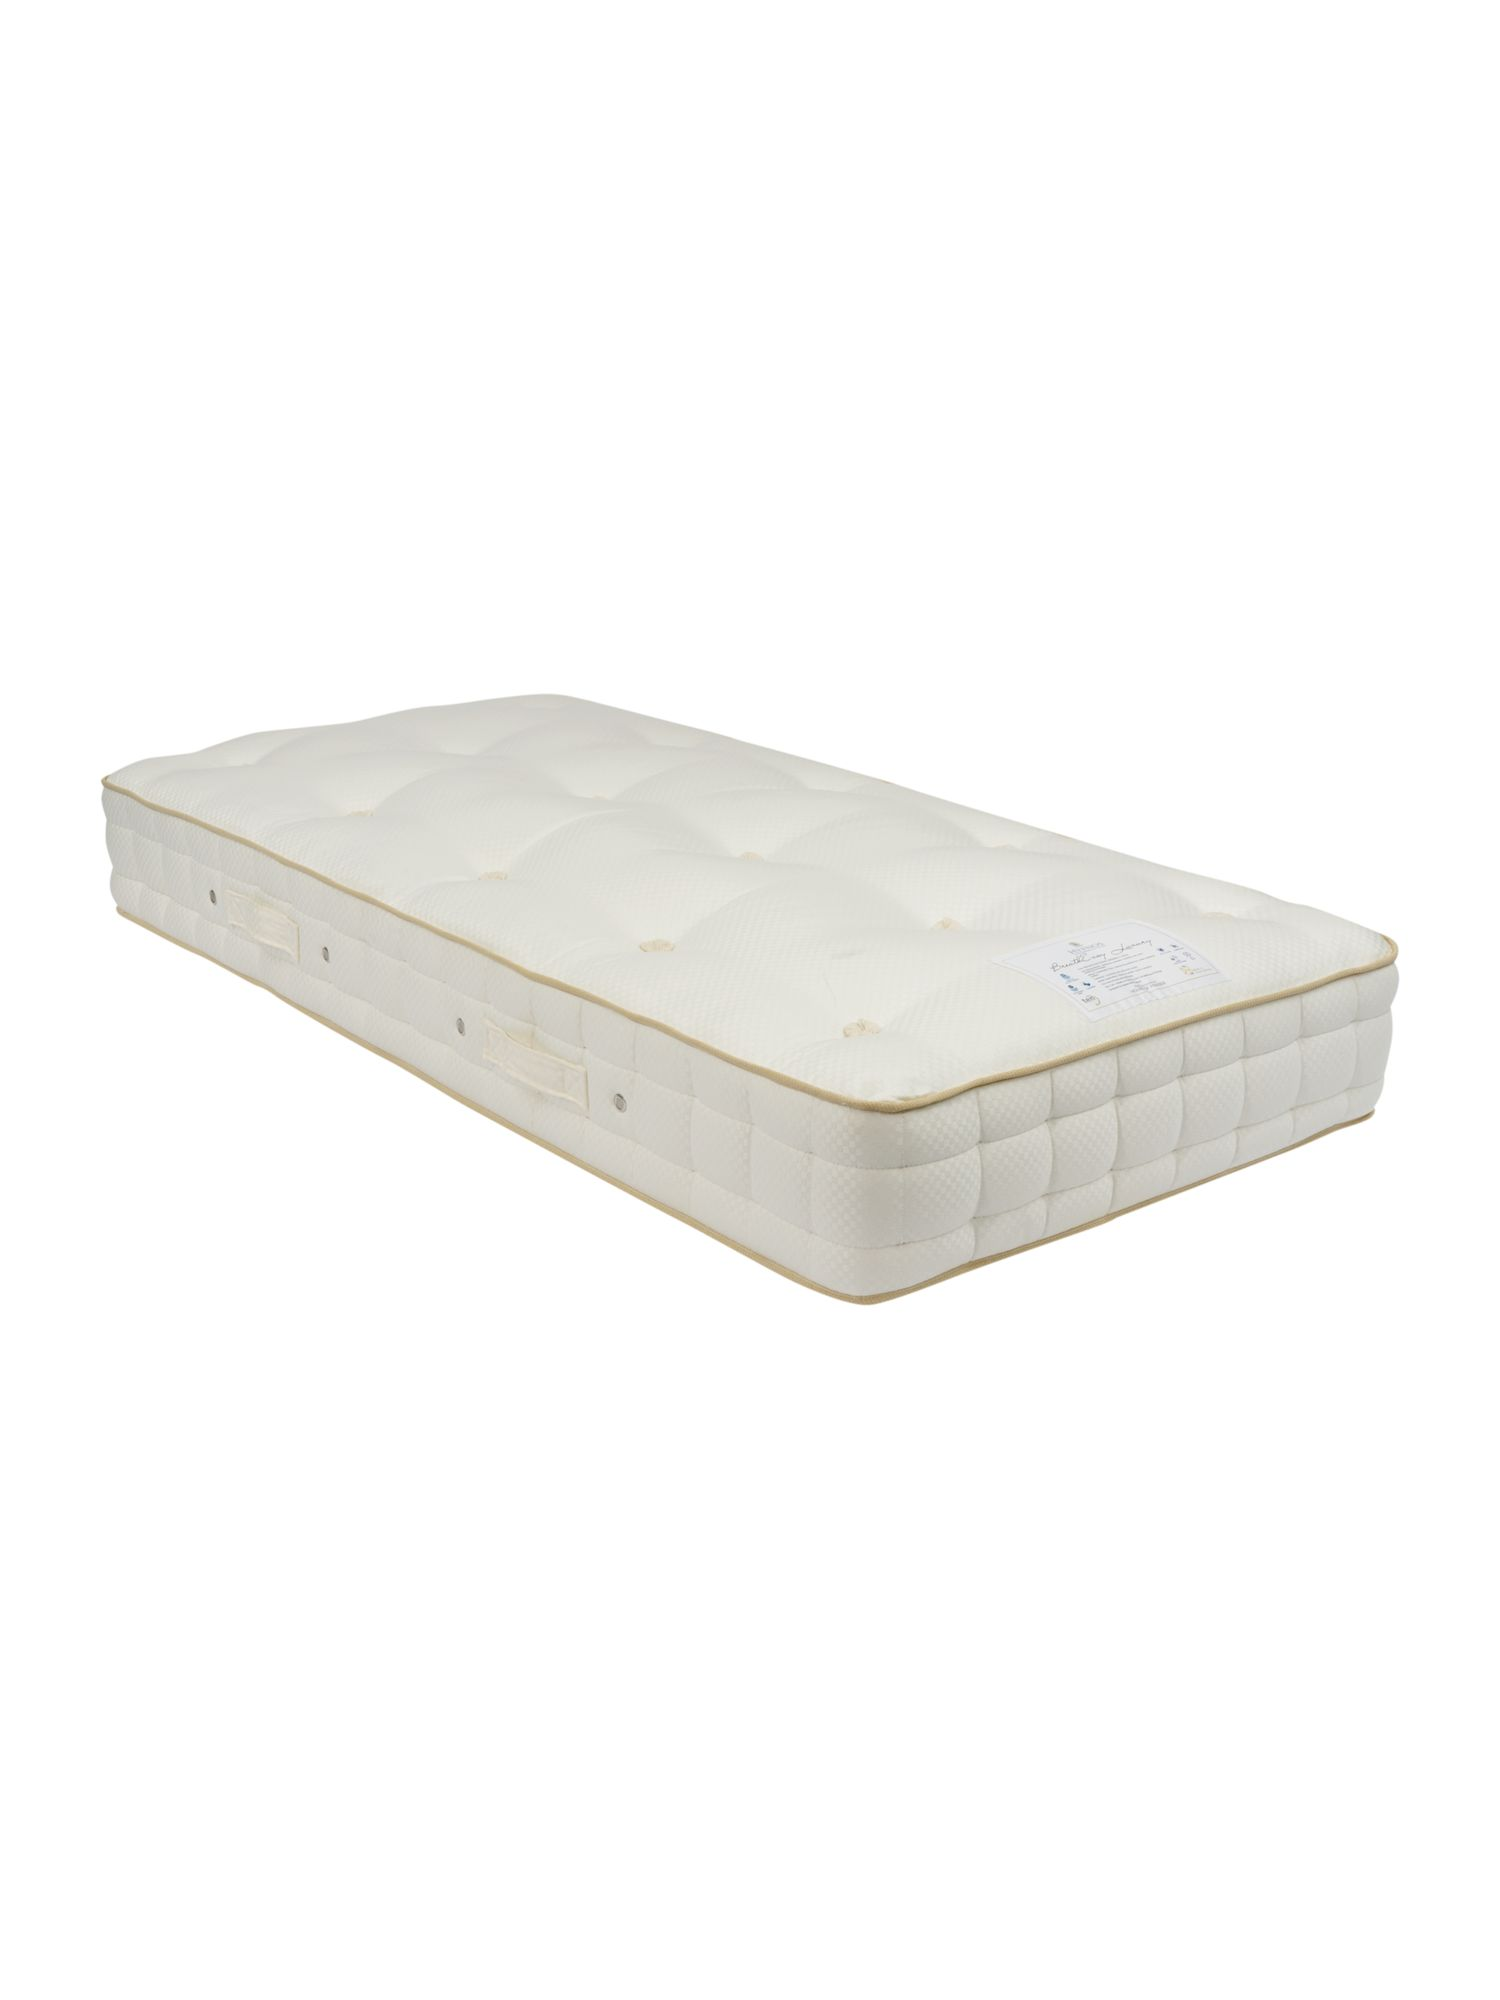 Breatheasy luxury single mattress